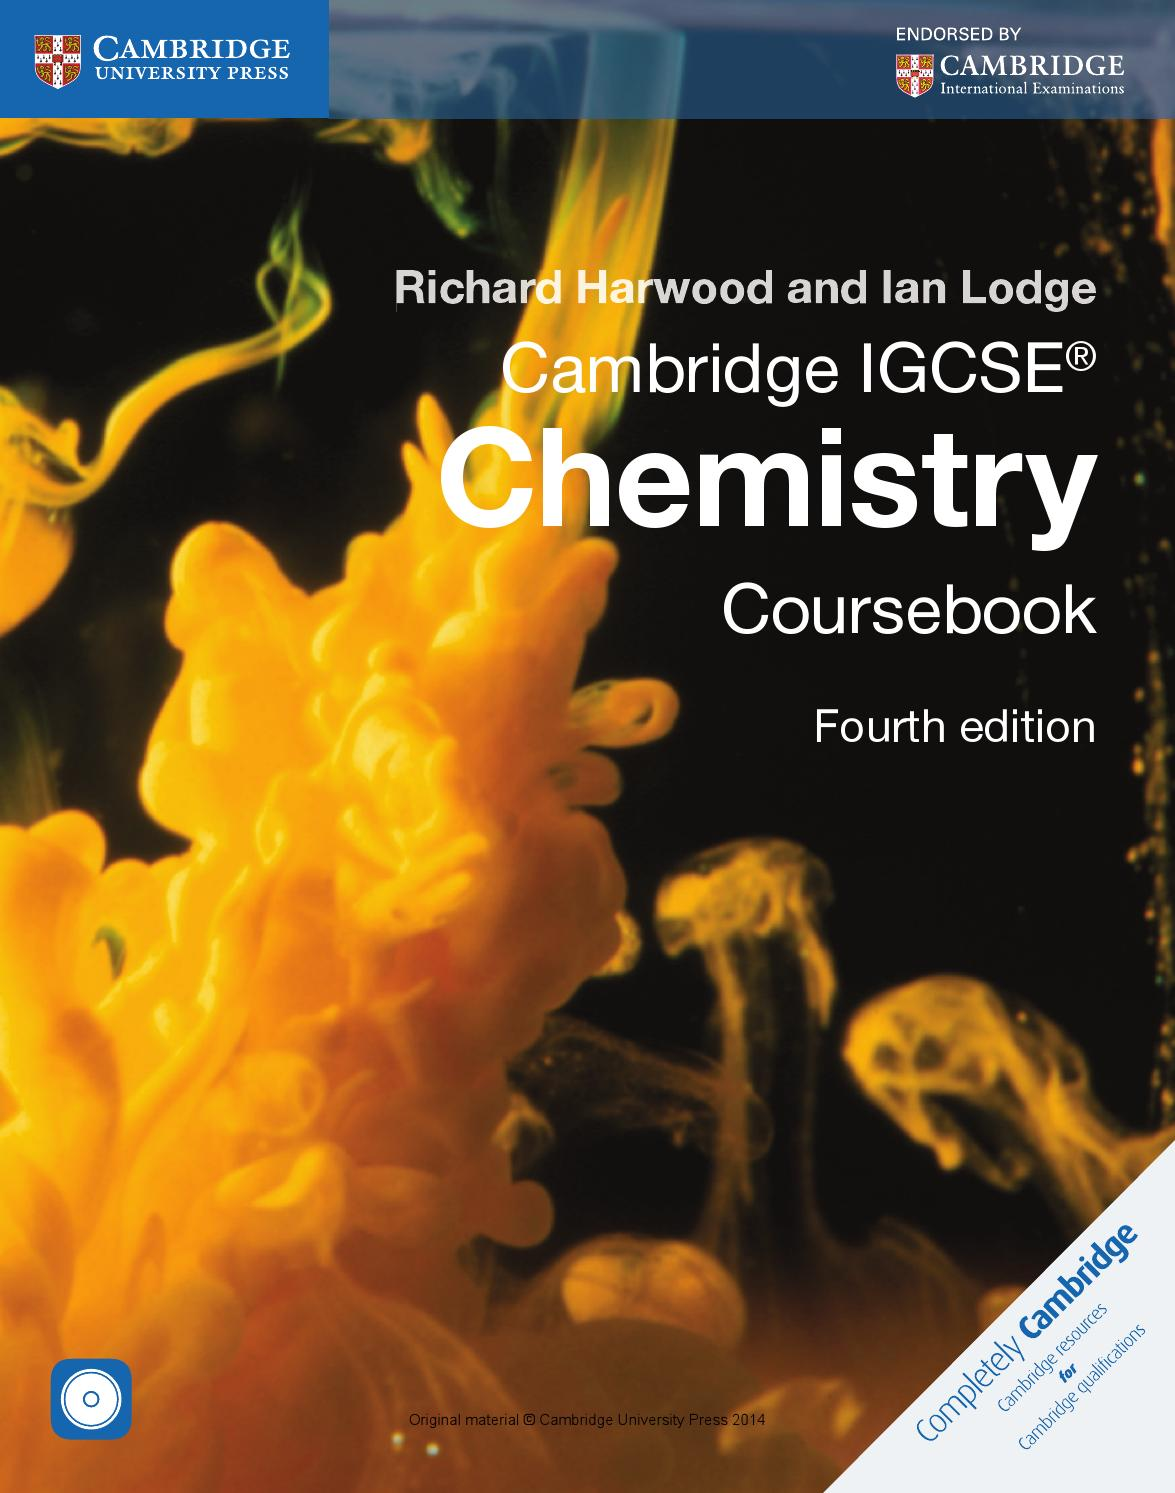 Cambridge igcse chemistry coursebook fourth edition by cambridge cambridge igcse chemistry coursebook fourth edition by cambridge university press education issuu fandeluxe